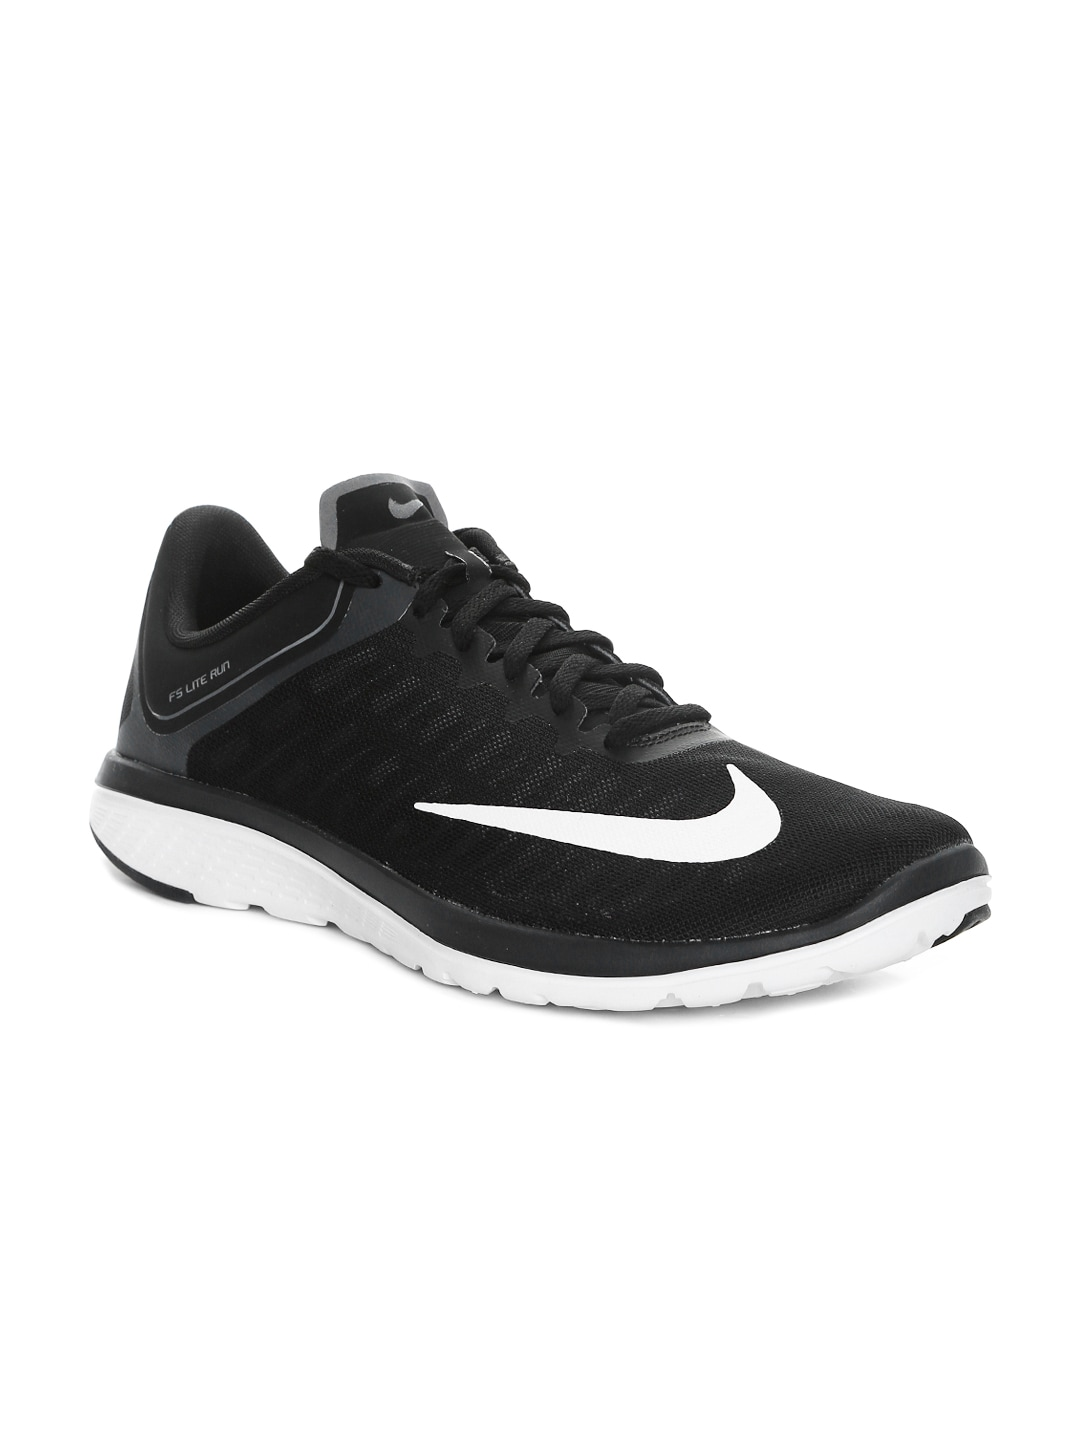 Nike FS Lite Run 4 Women's Running Shoes Cool Aha Produktion